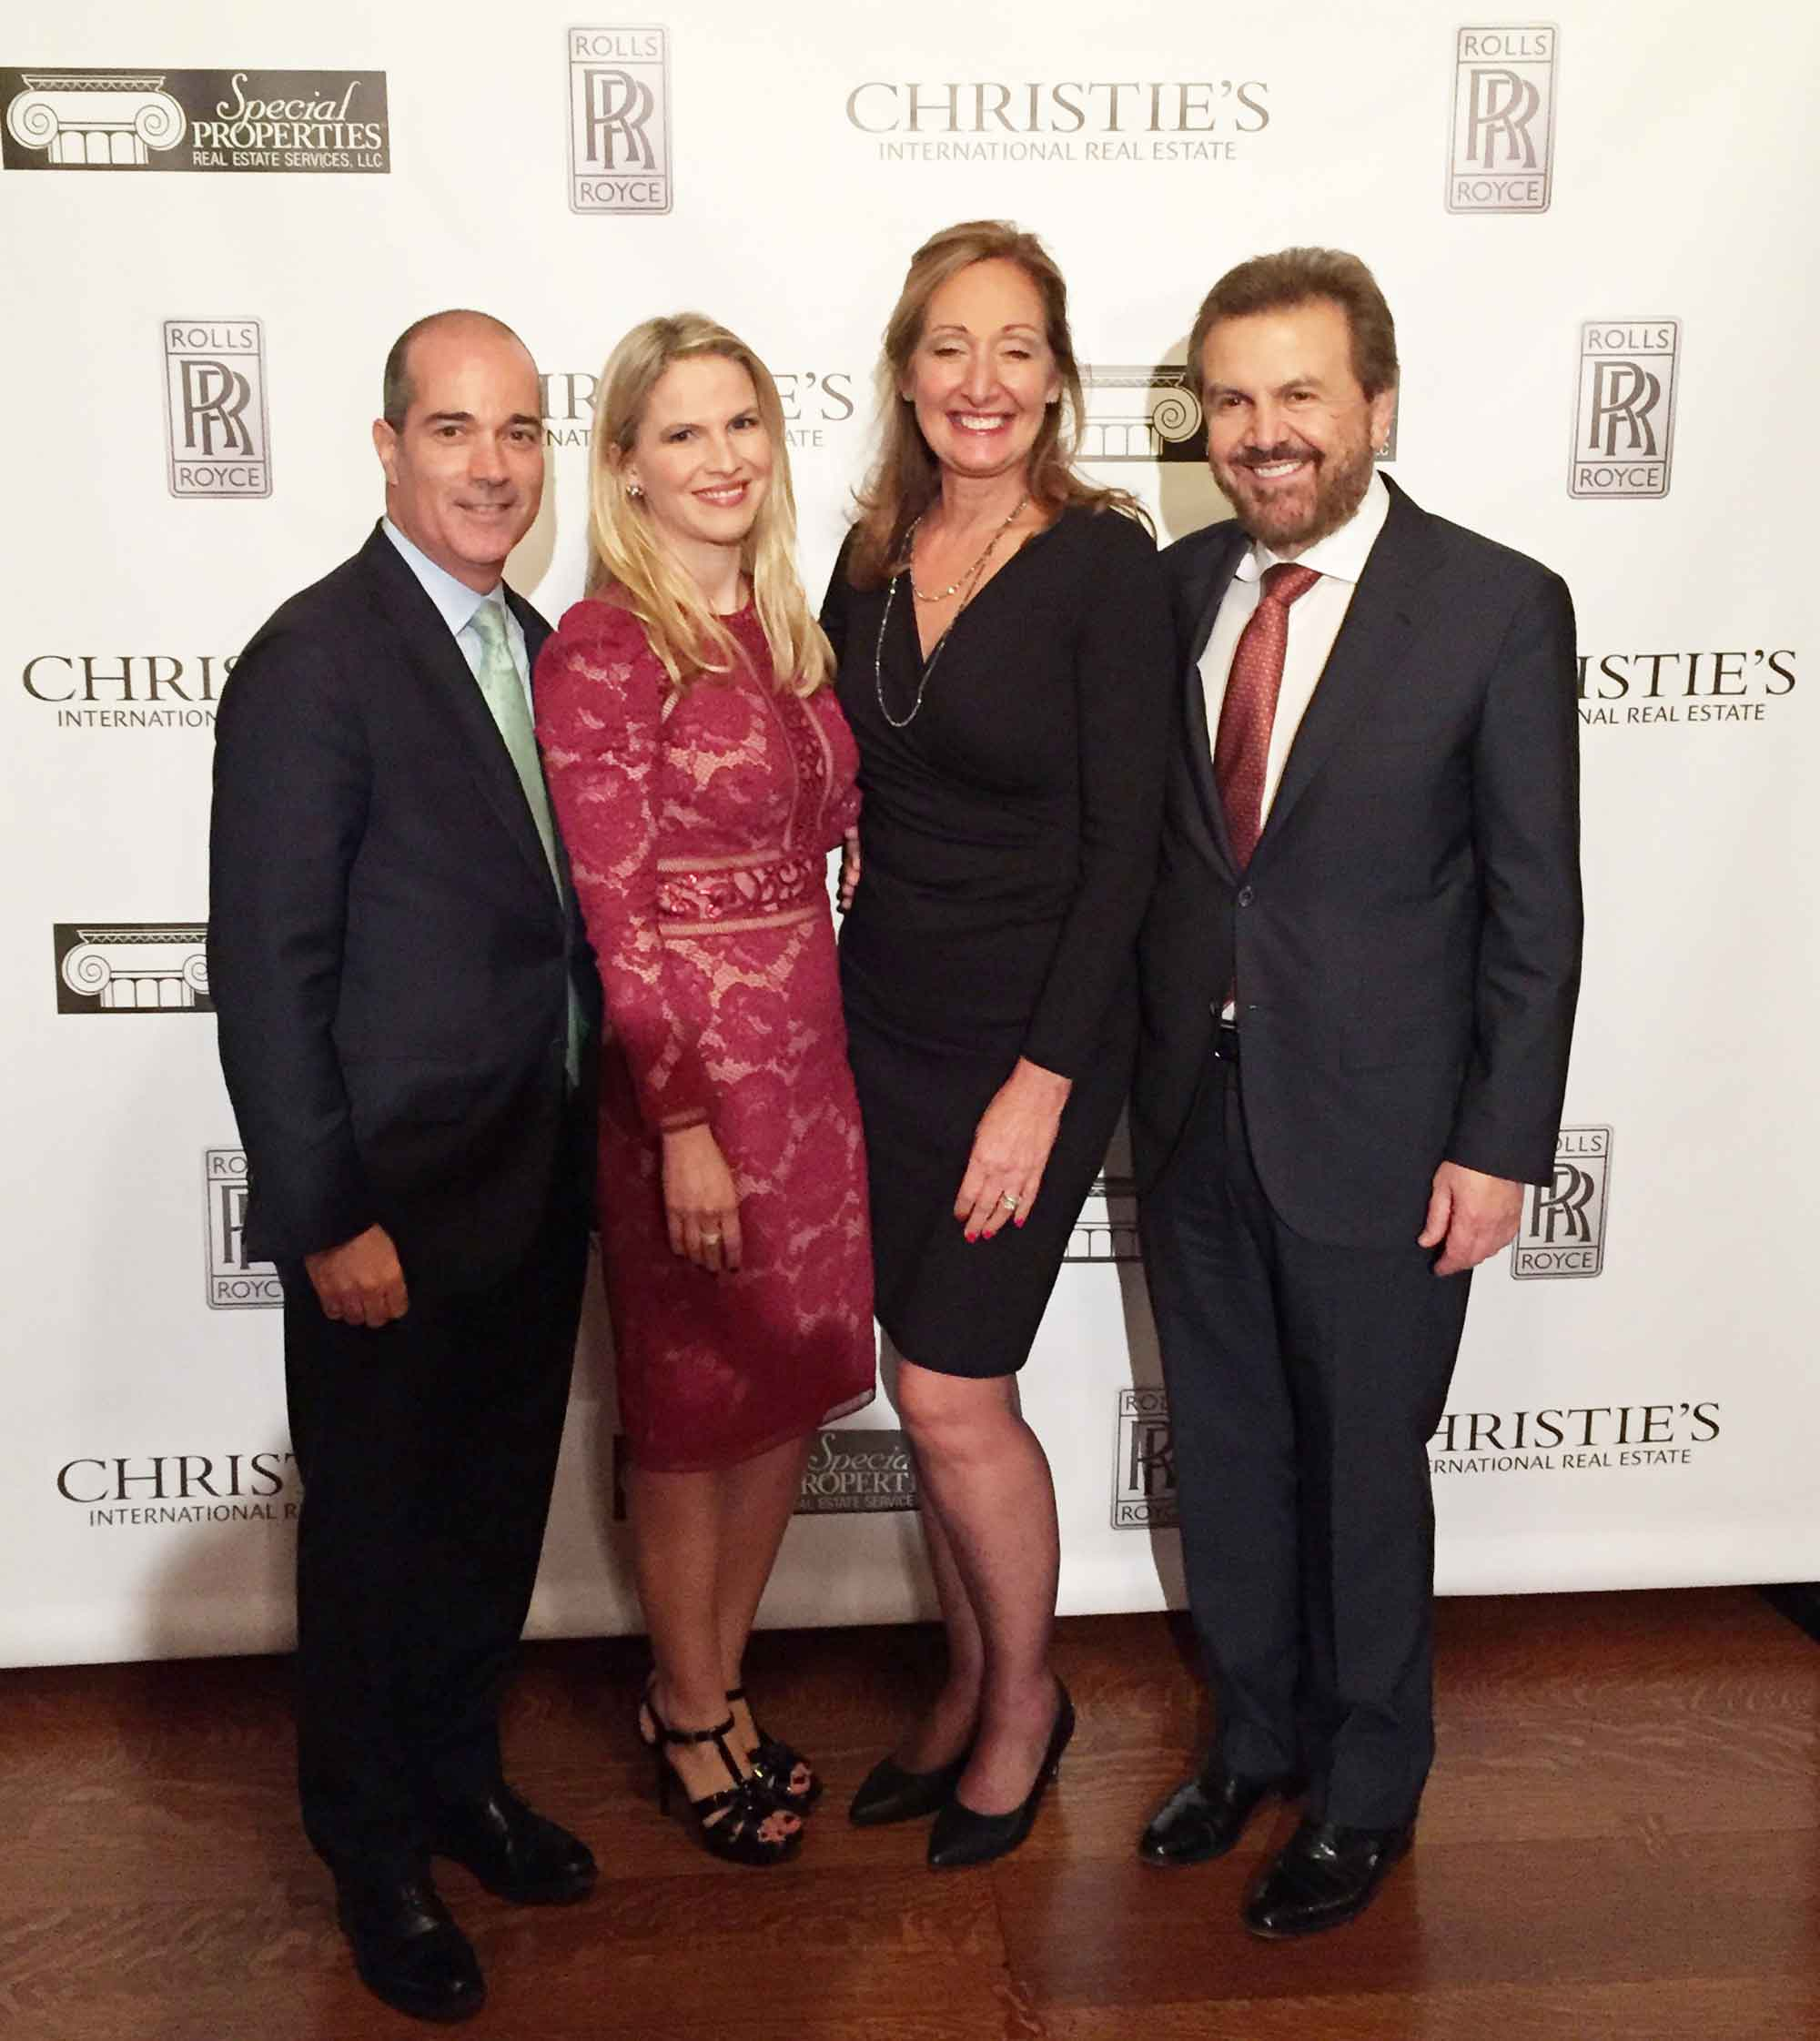 Dan Conn, Chief Executive Officer of Christie's International Real Estate; Sonja Cullaro, Executive Vice President of Special Properties Real Estate Services; Kathleen Coumou, Executive Director of Christie's International Real Estate; and Ilija Pavlovic, President and CEO of Special Properties Real Estate Services.